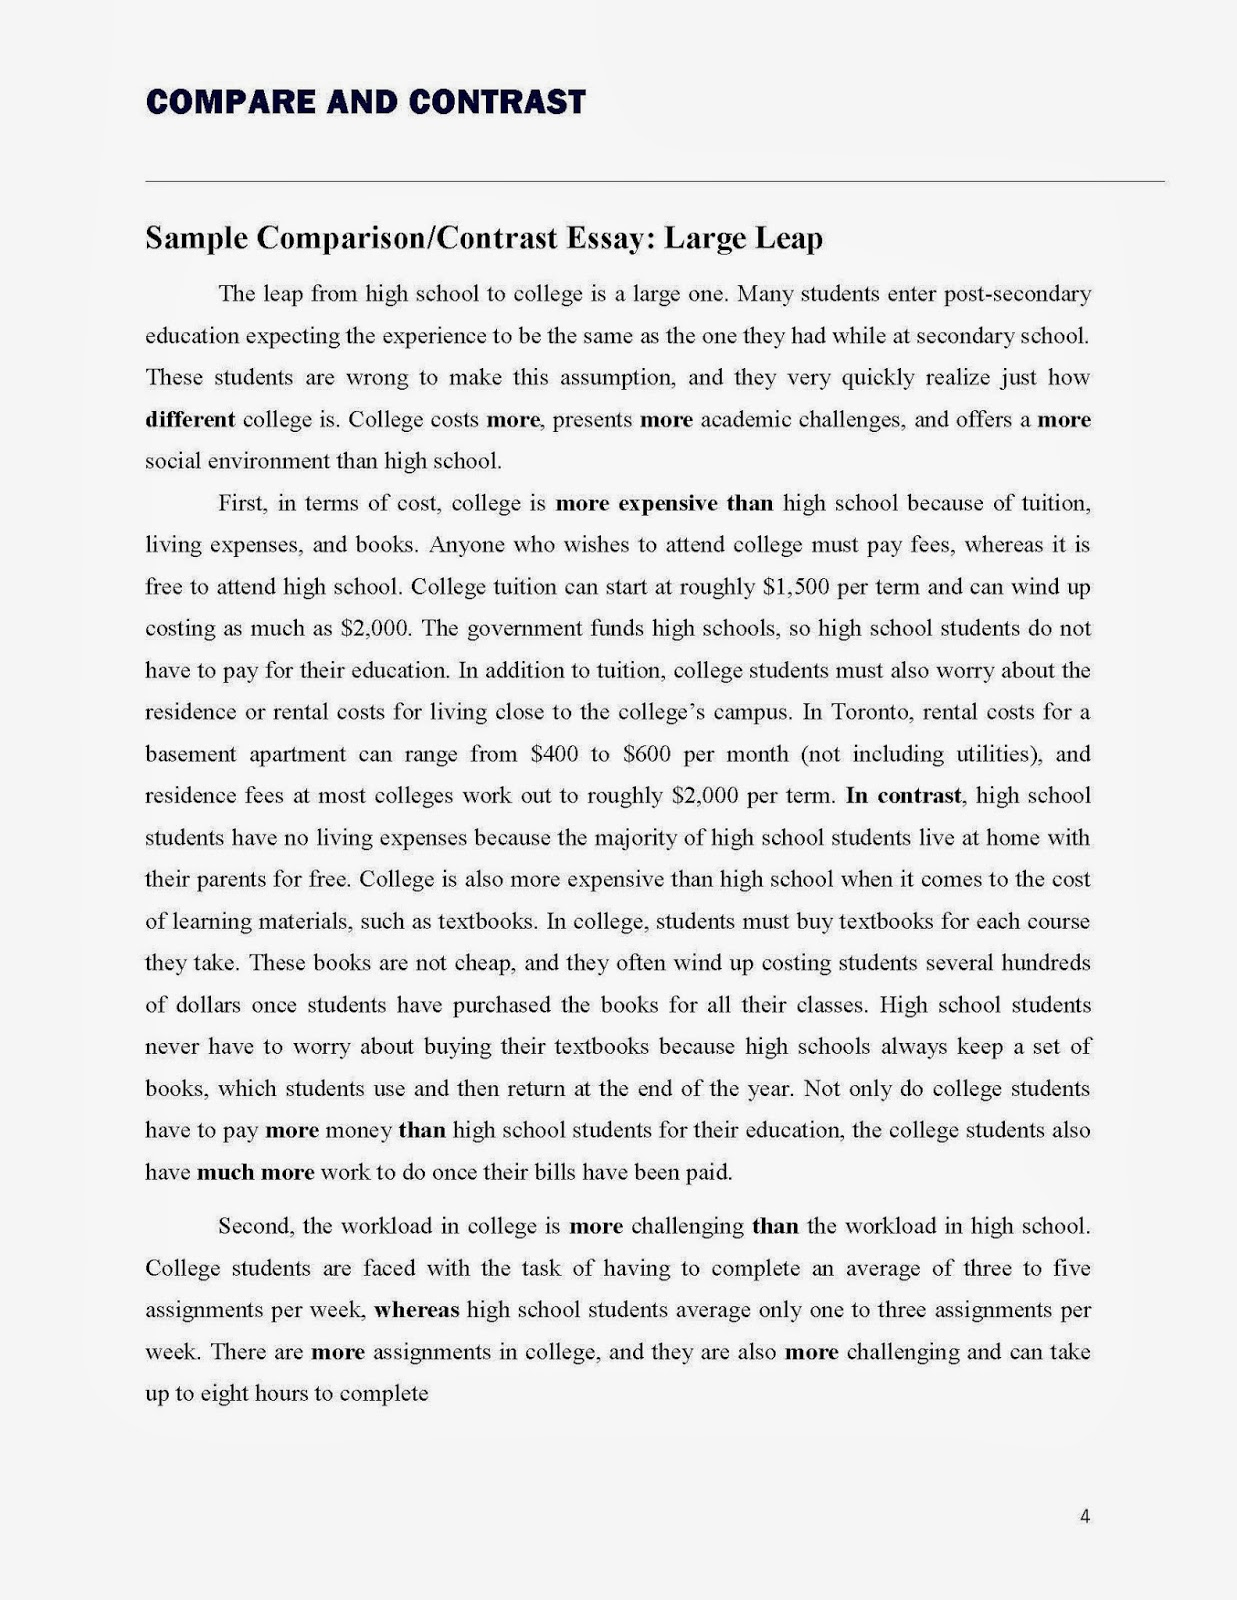 003 Compareandcontrastessay Page 4h125 Compare Essay Beautiful Contrast Topics Ielts Examples College Middle School Full